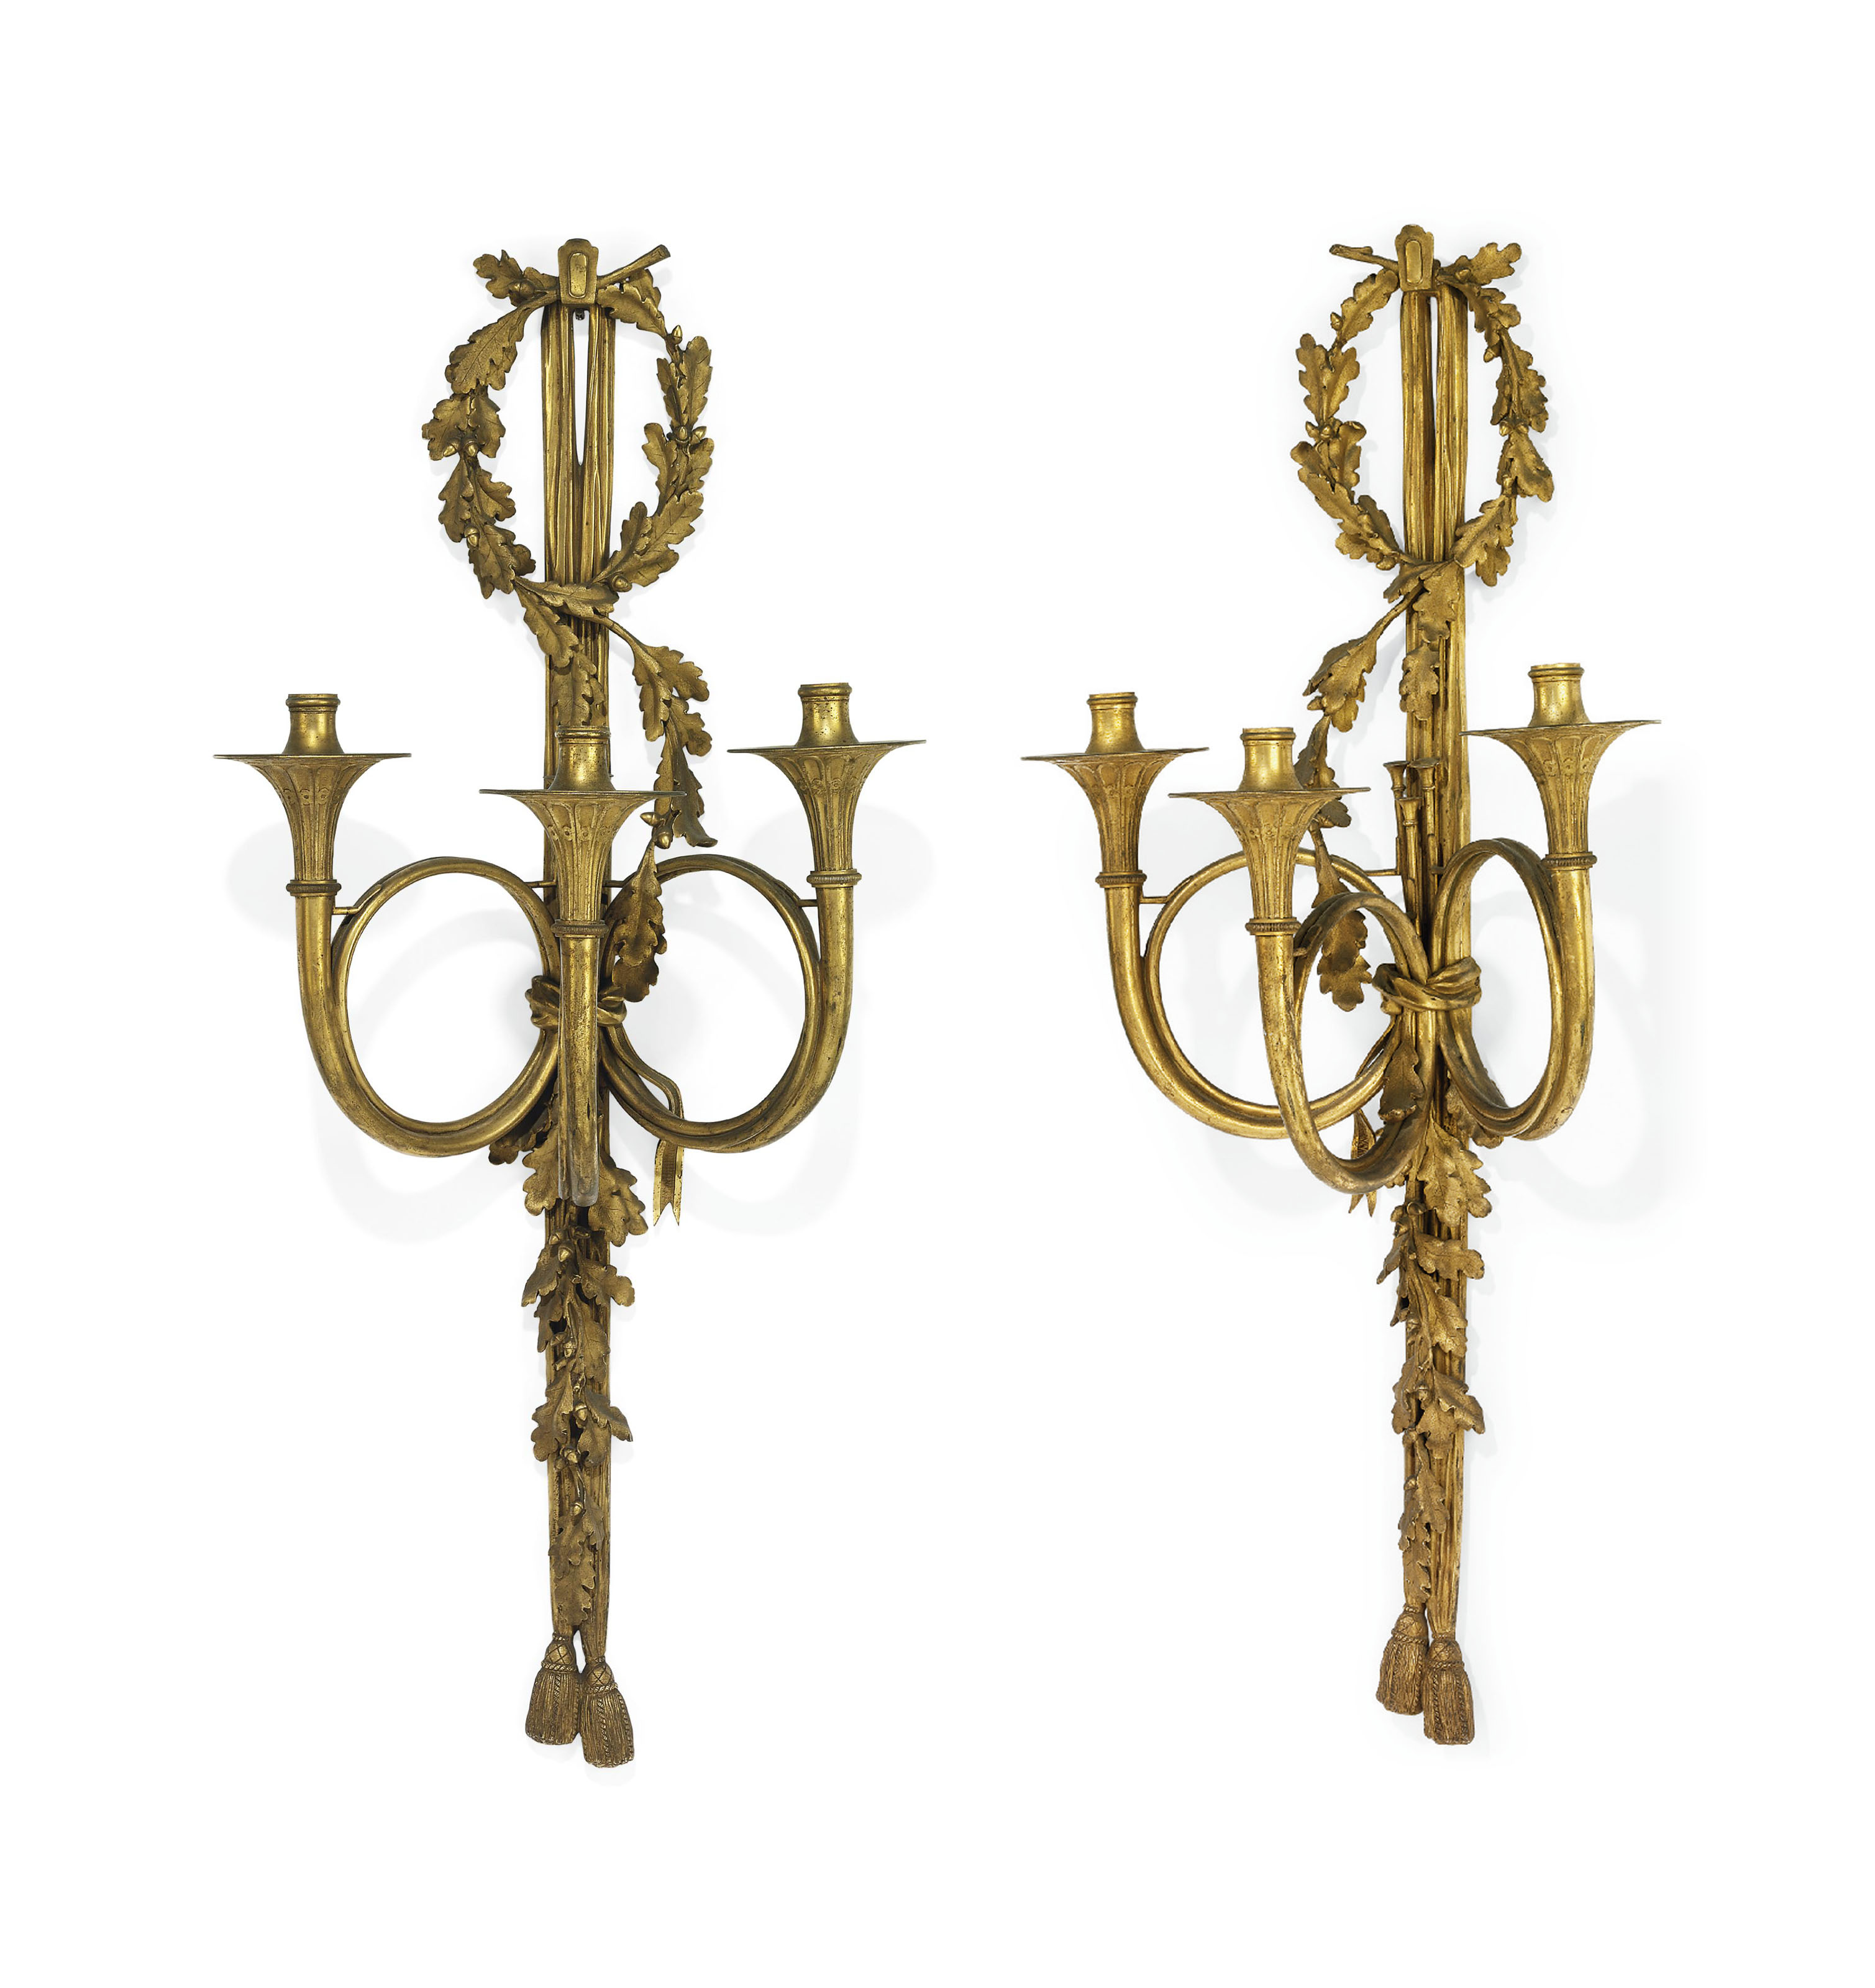 A PAIR OF FRENCH ORMOLU THREE-LIGHT WALL-APPLIQUES